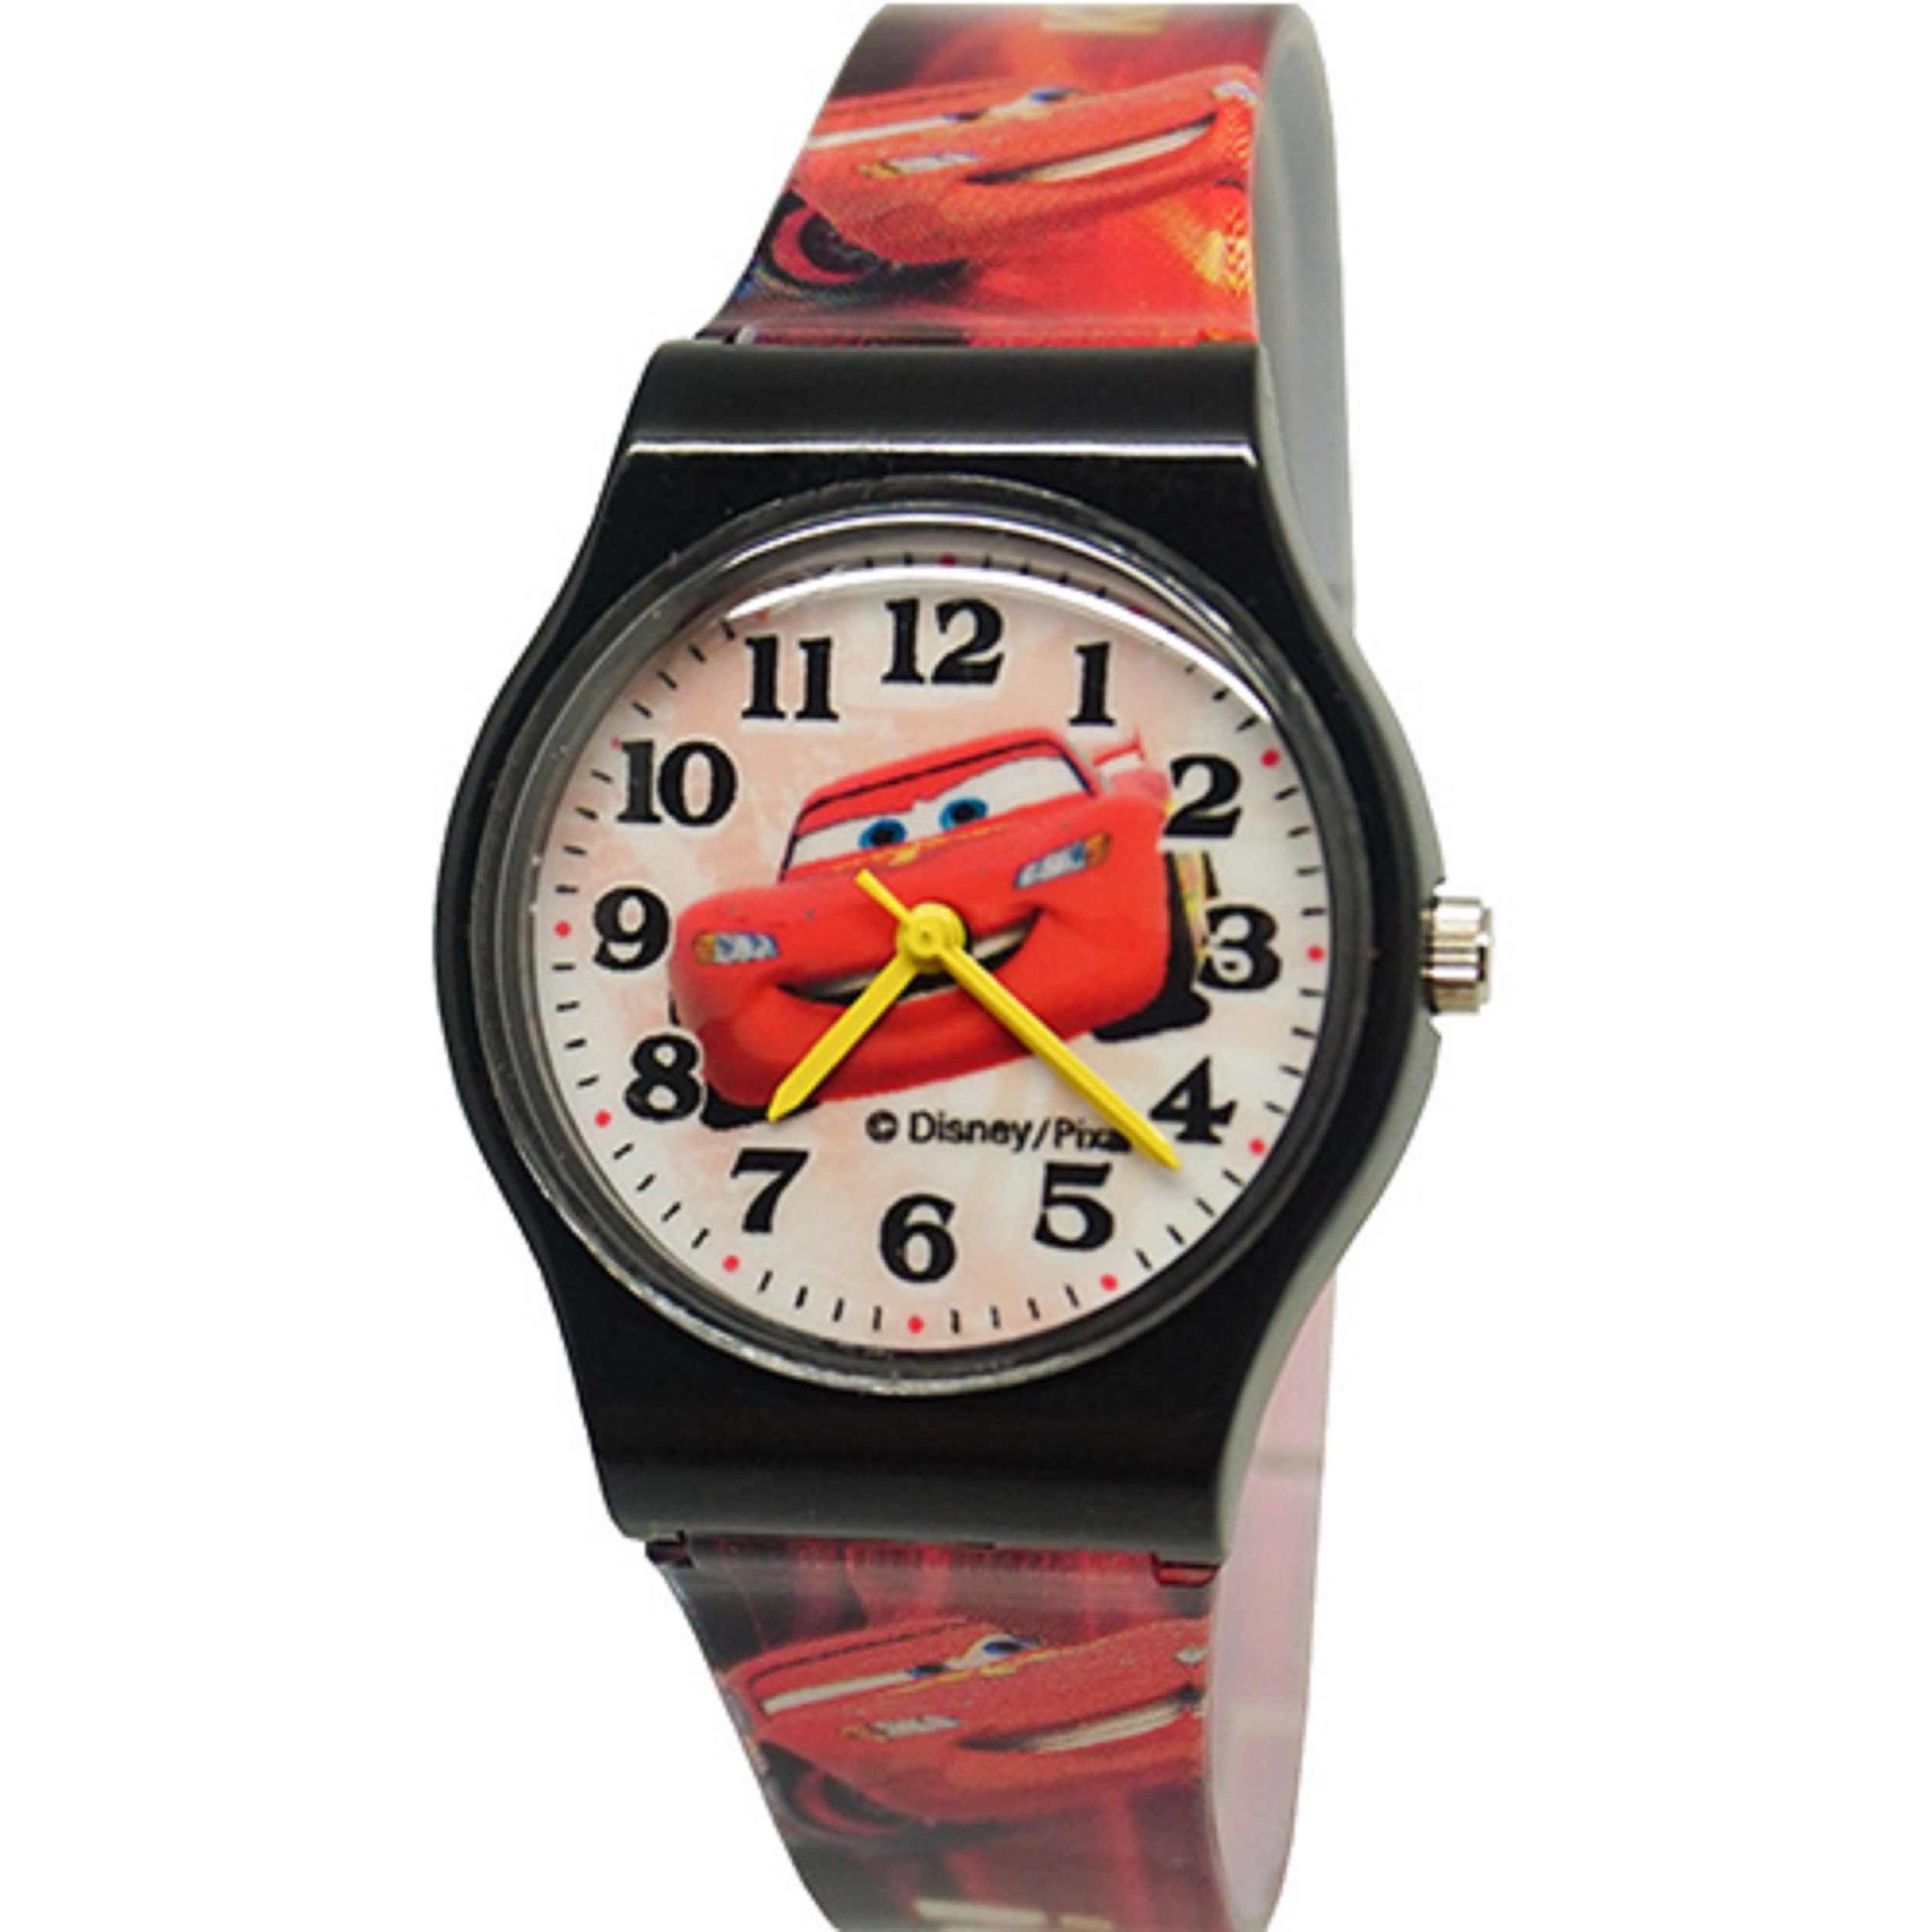 Disney Cars Watch For Kids .Large Analog Dial. 9'' L Band.